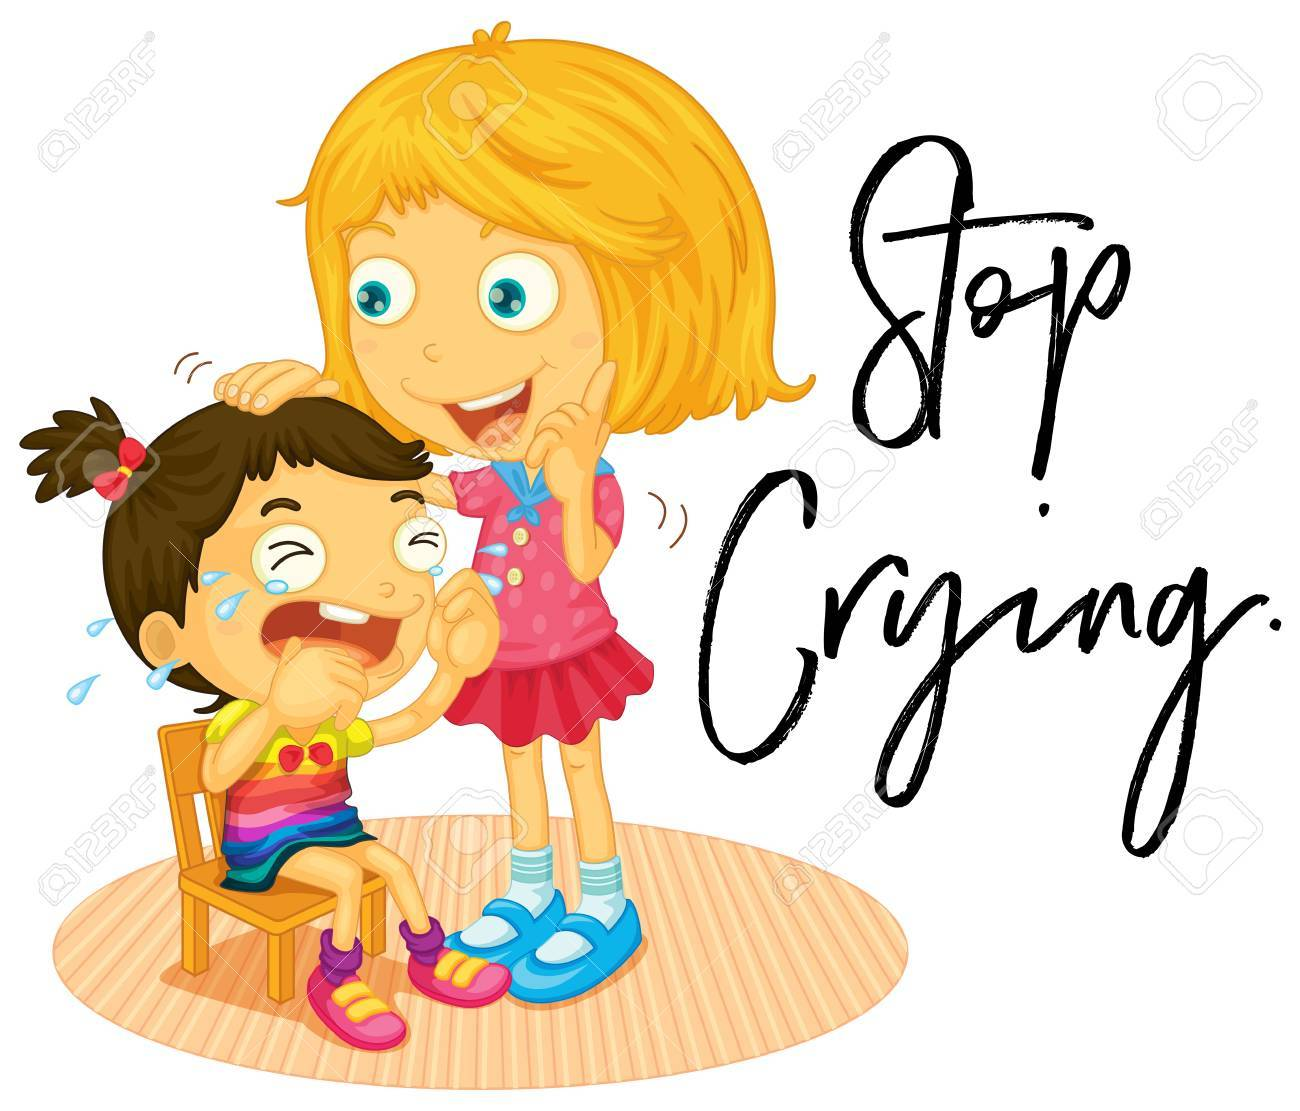 big sister and little girl crying illustration royalty free cliparts rh 123rf com